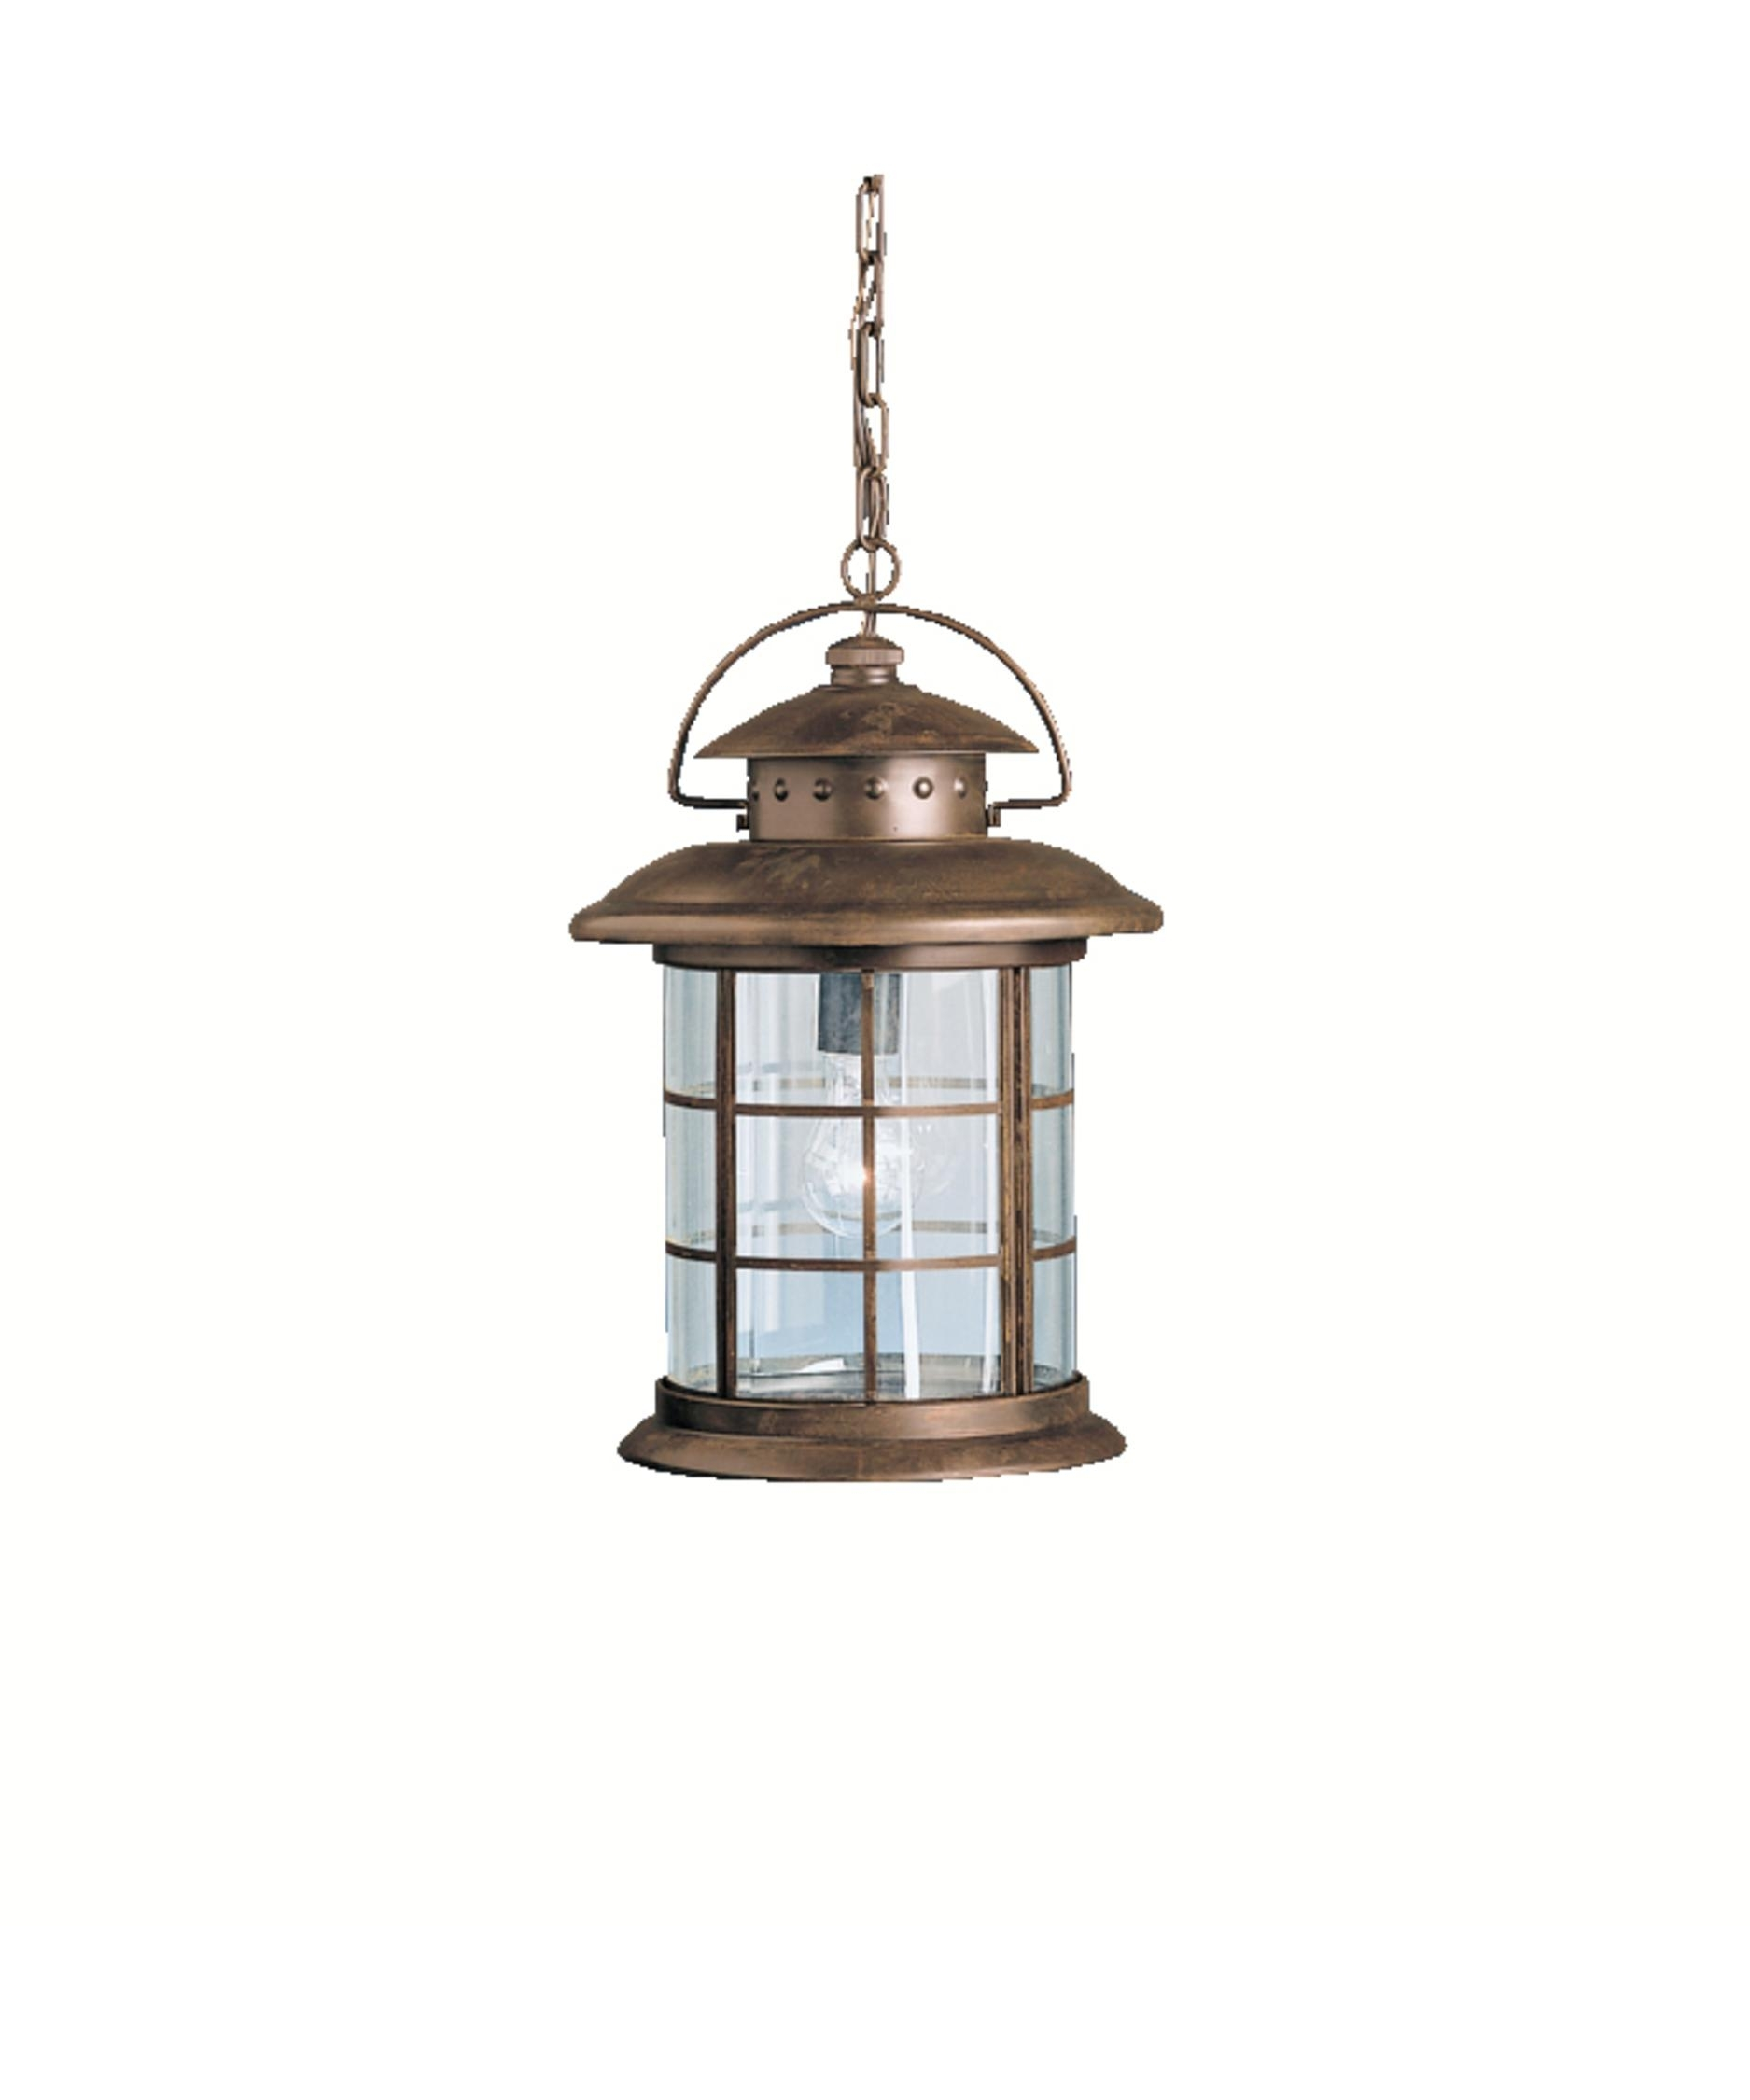 Kichler 9870 Rustic 11 Inch Wide 1 Light Outdoor Hanging Lantern Throughout Outdoor Ceiling Pendant Lights (#4 of 15)